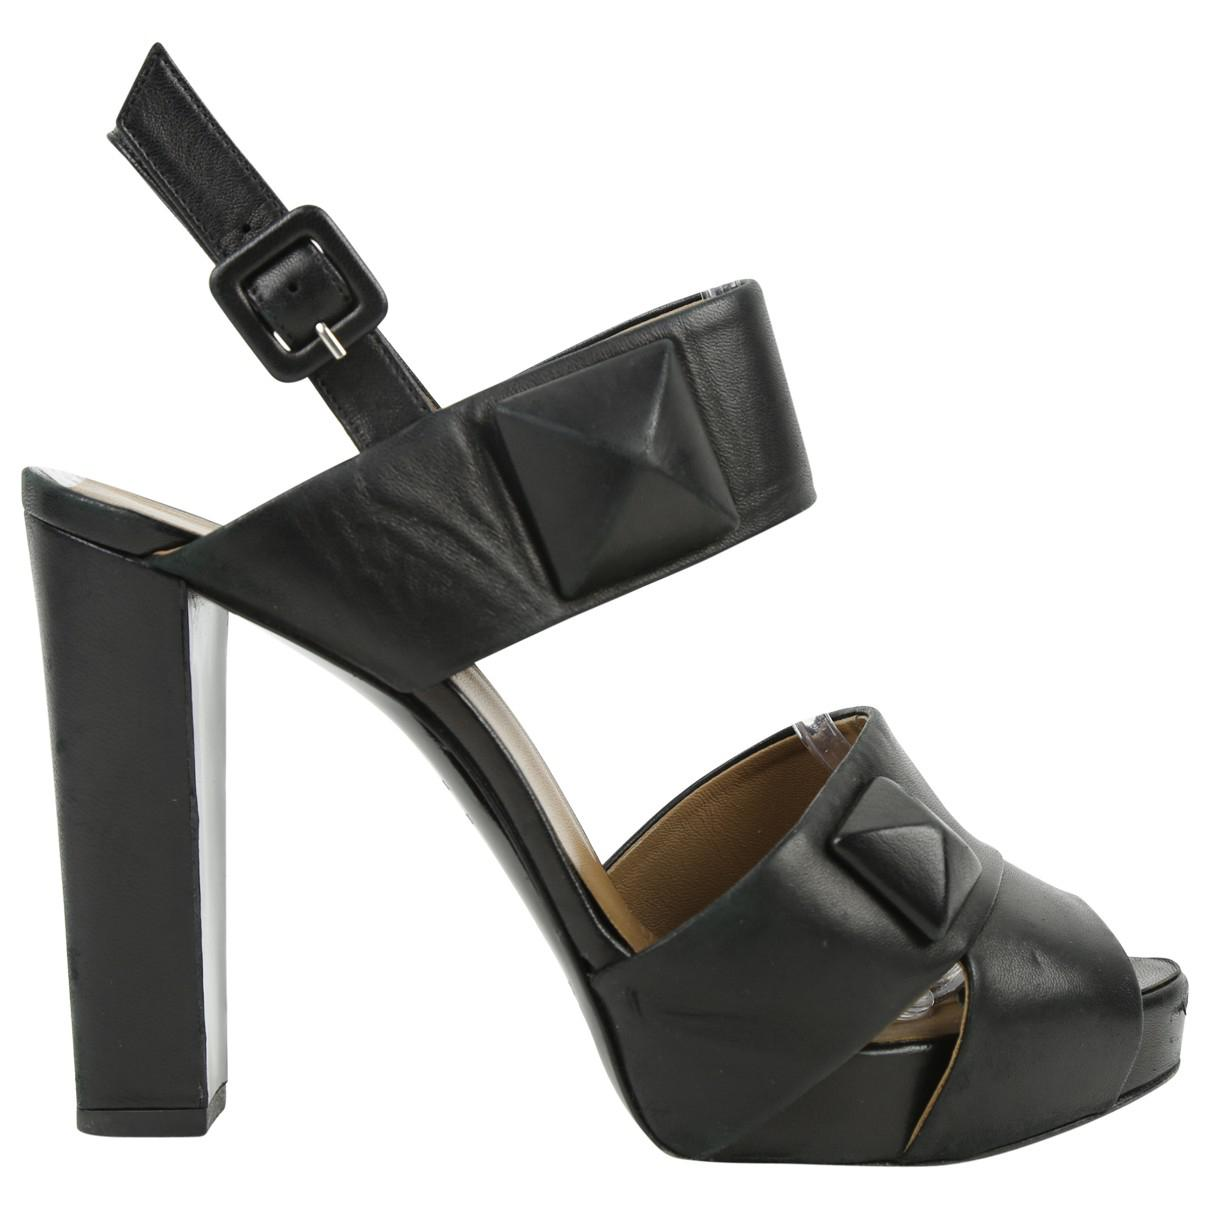 Pre-owned - Black Leather Heels Herm 7BzrYy9